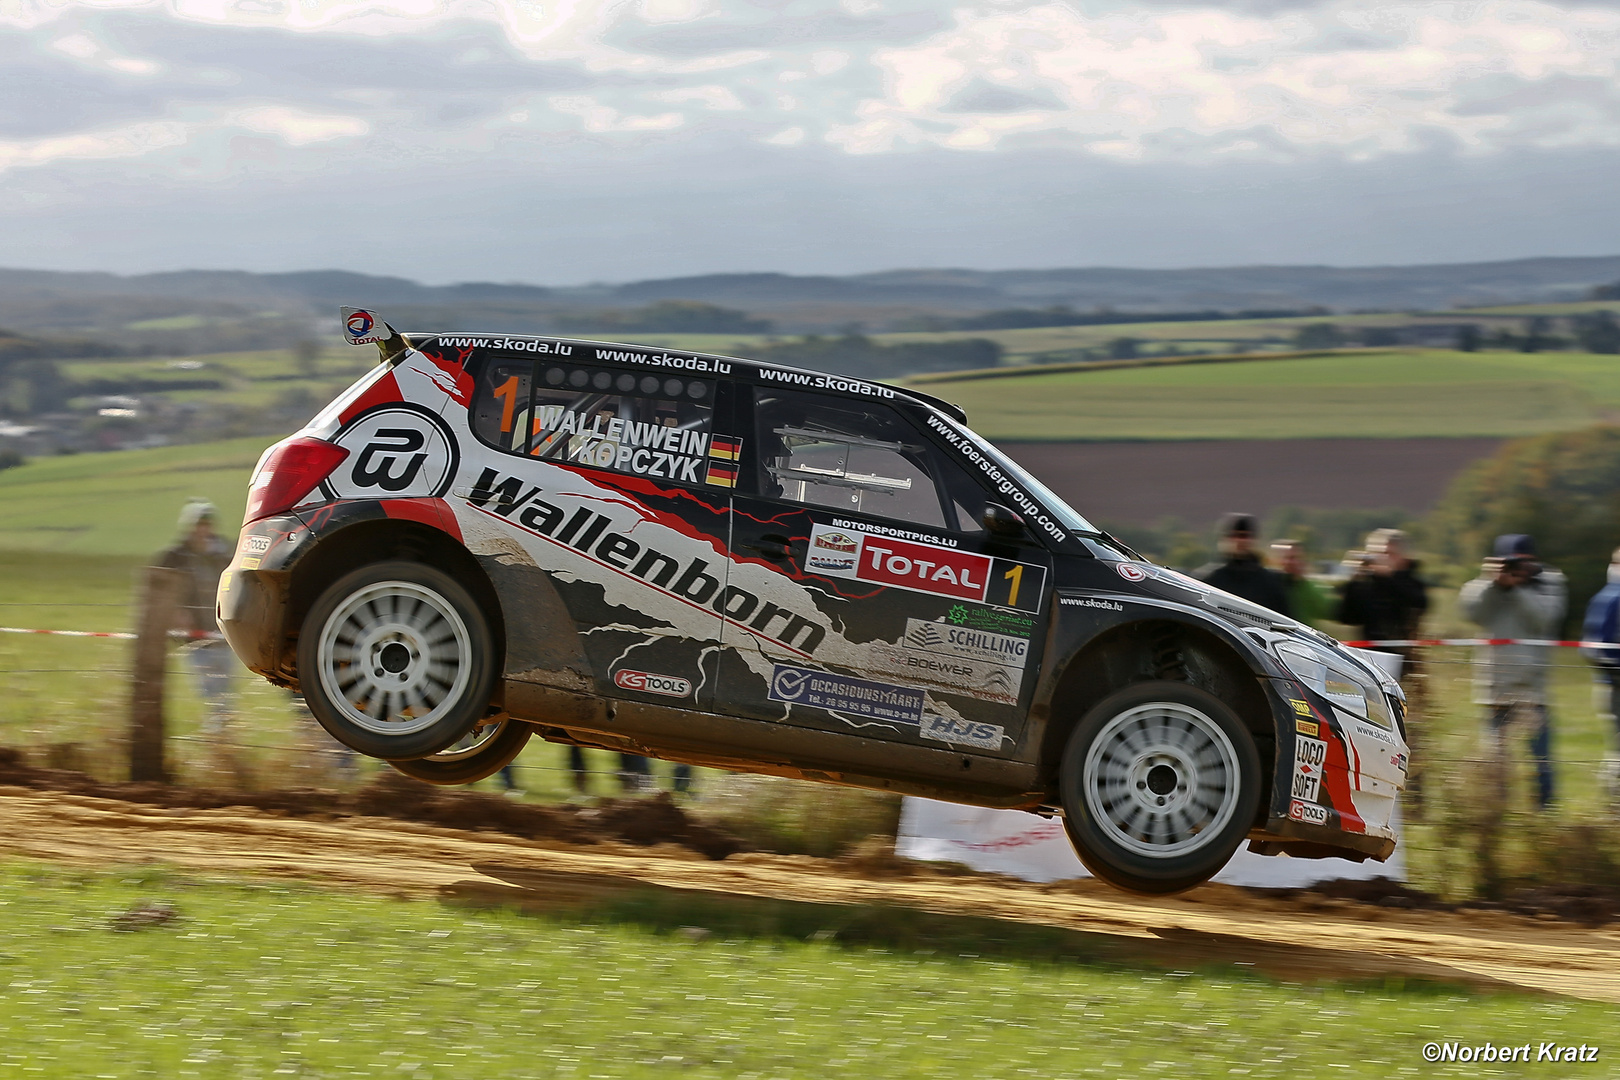 Small jump at he Rallye Luxembourg 2012